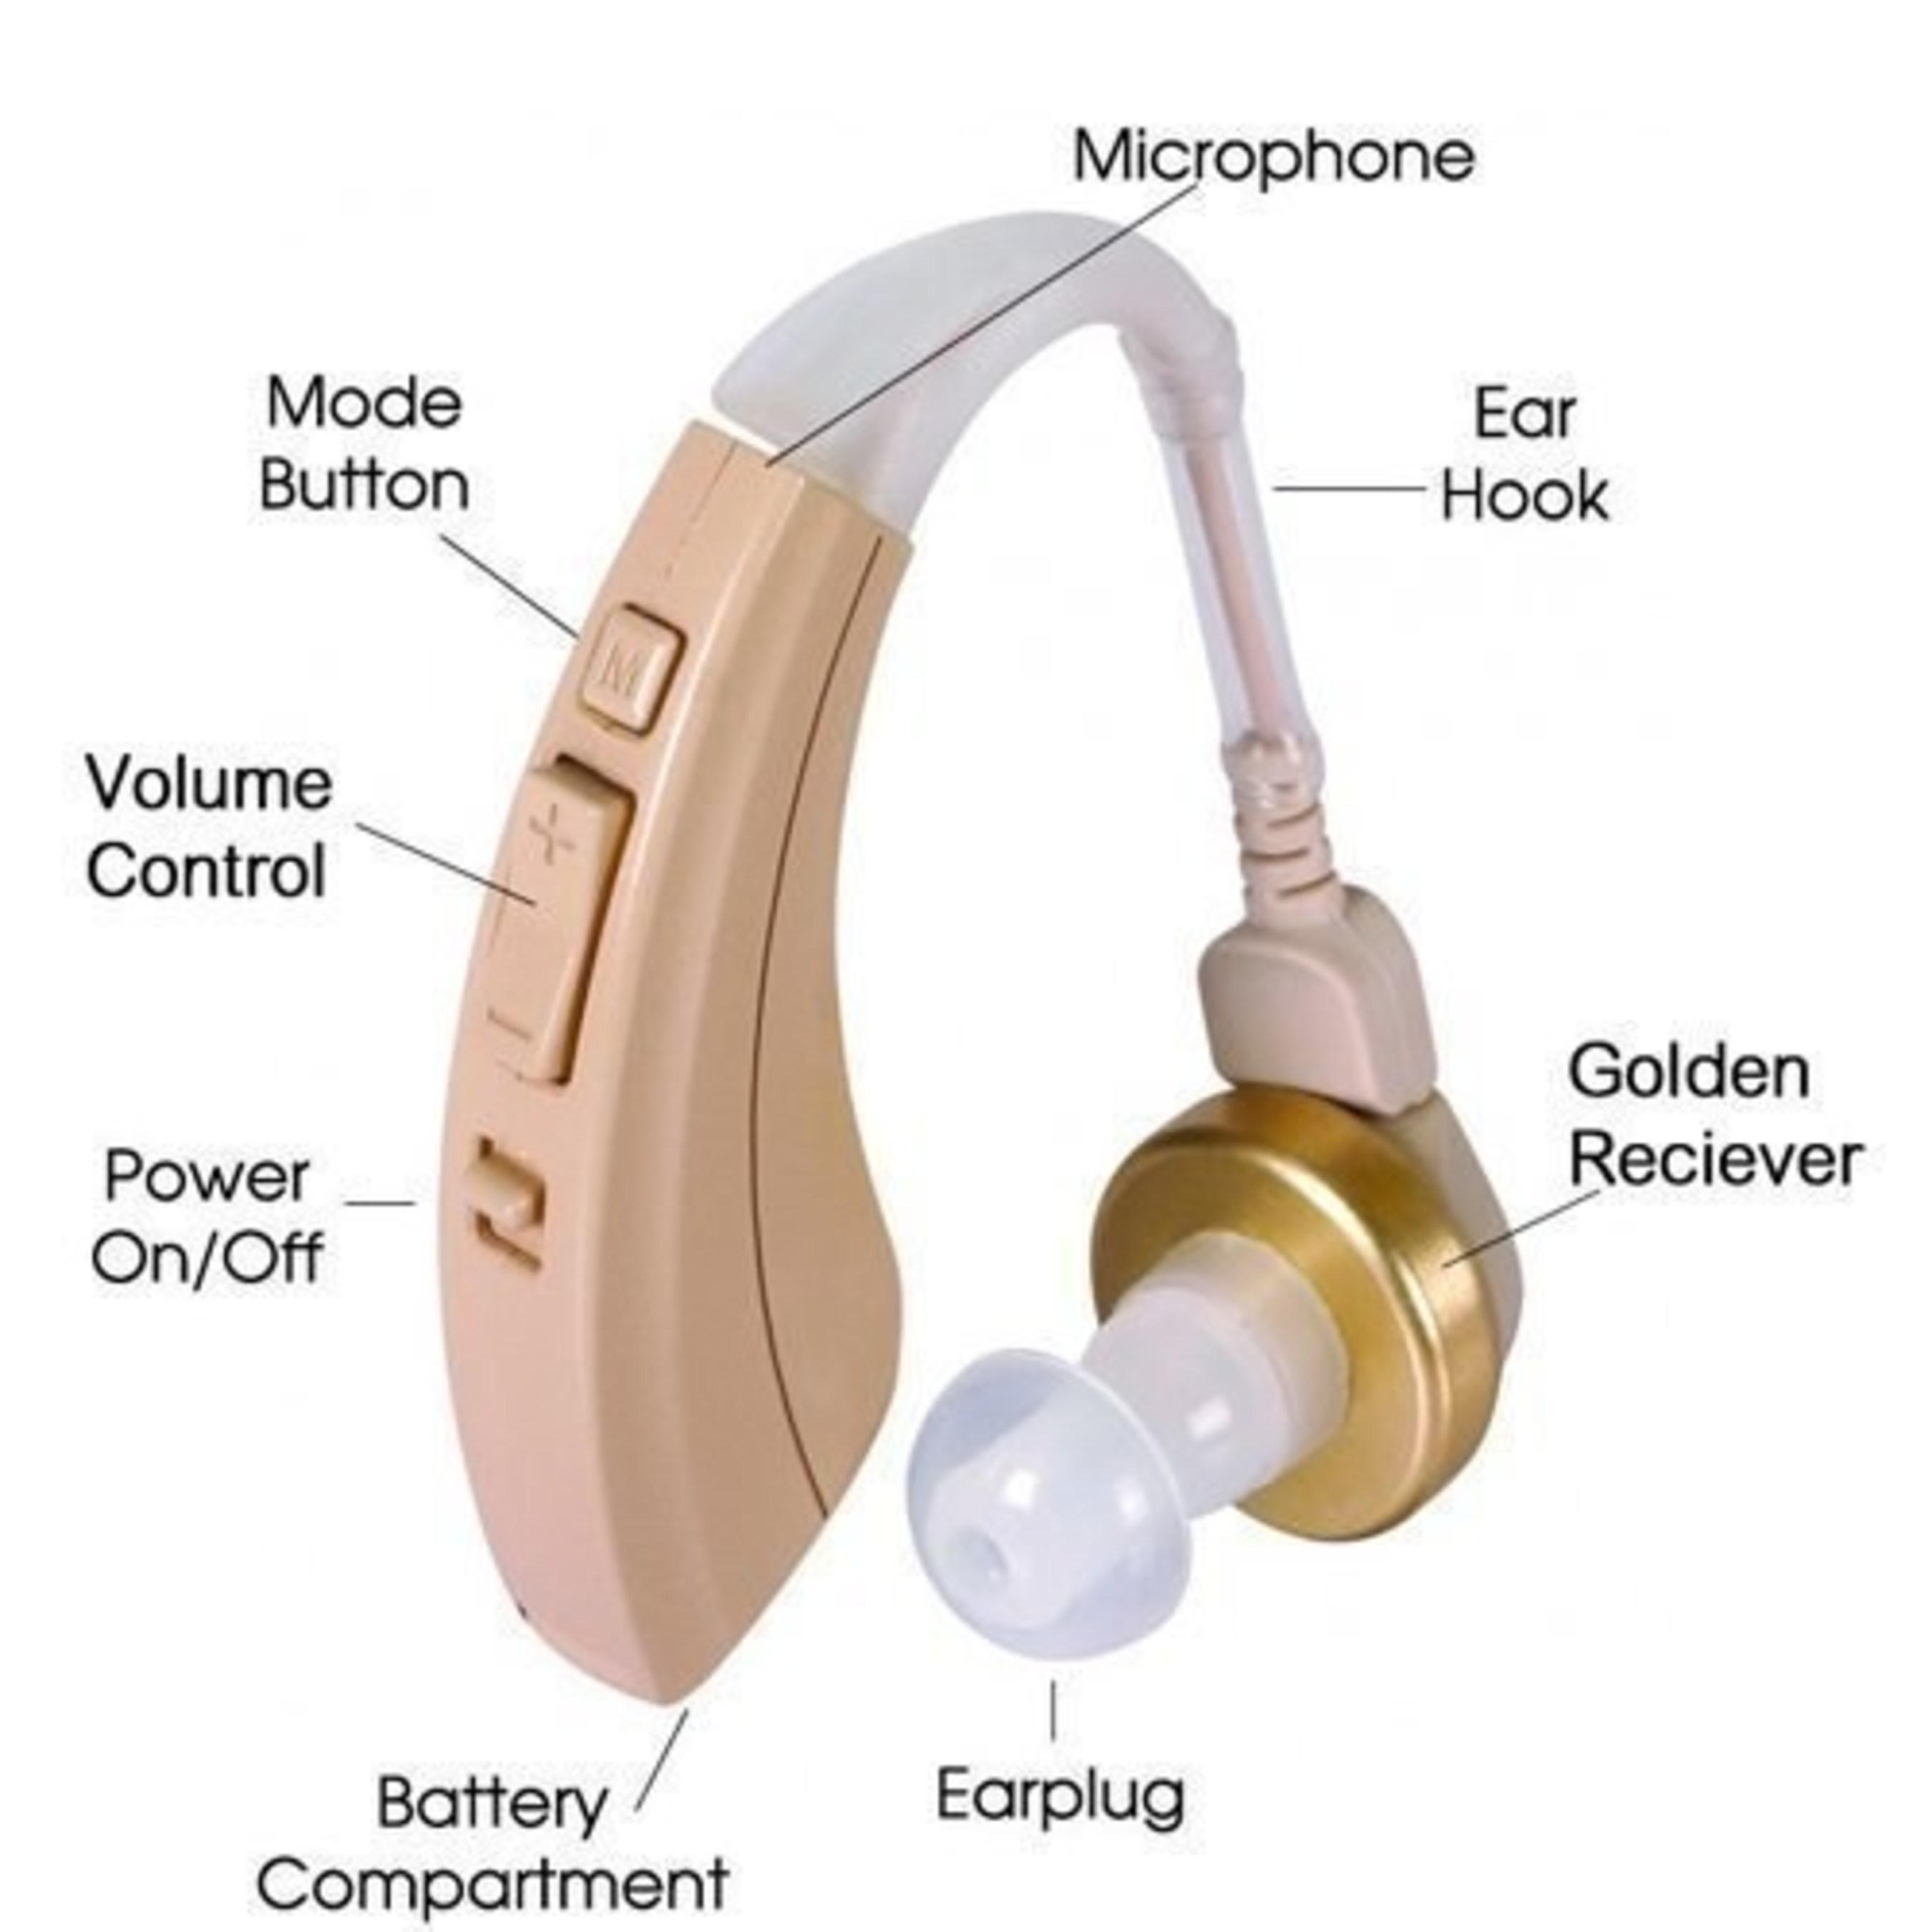 Affordable Newear Digital Hearing Amplifier Aids In Restoring Full Living Amplifiers Accessories Photo Http Photos Prnh 20141104 156518 The Design Of This Aid